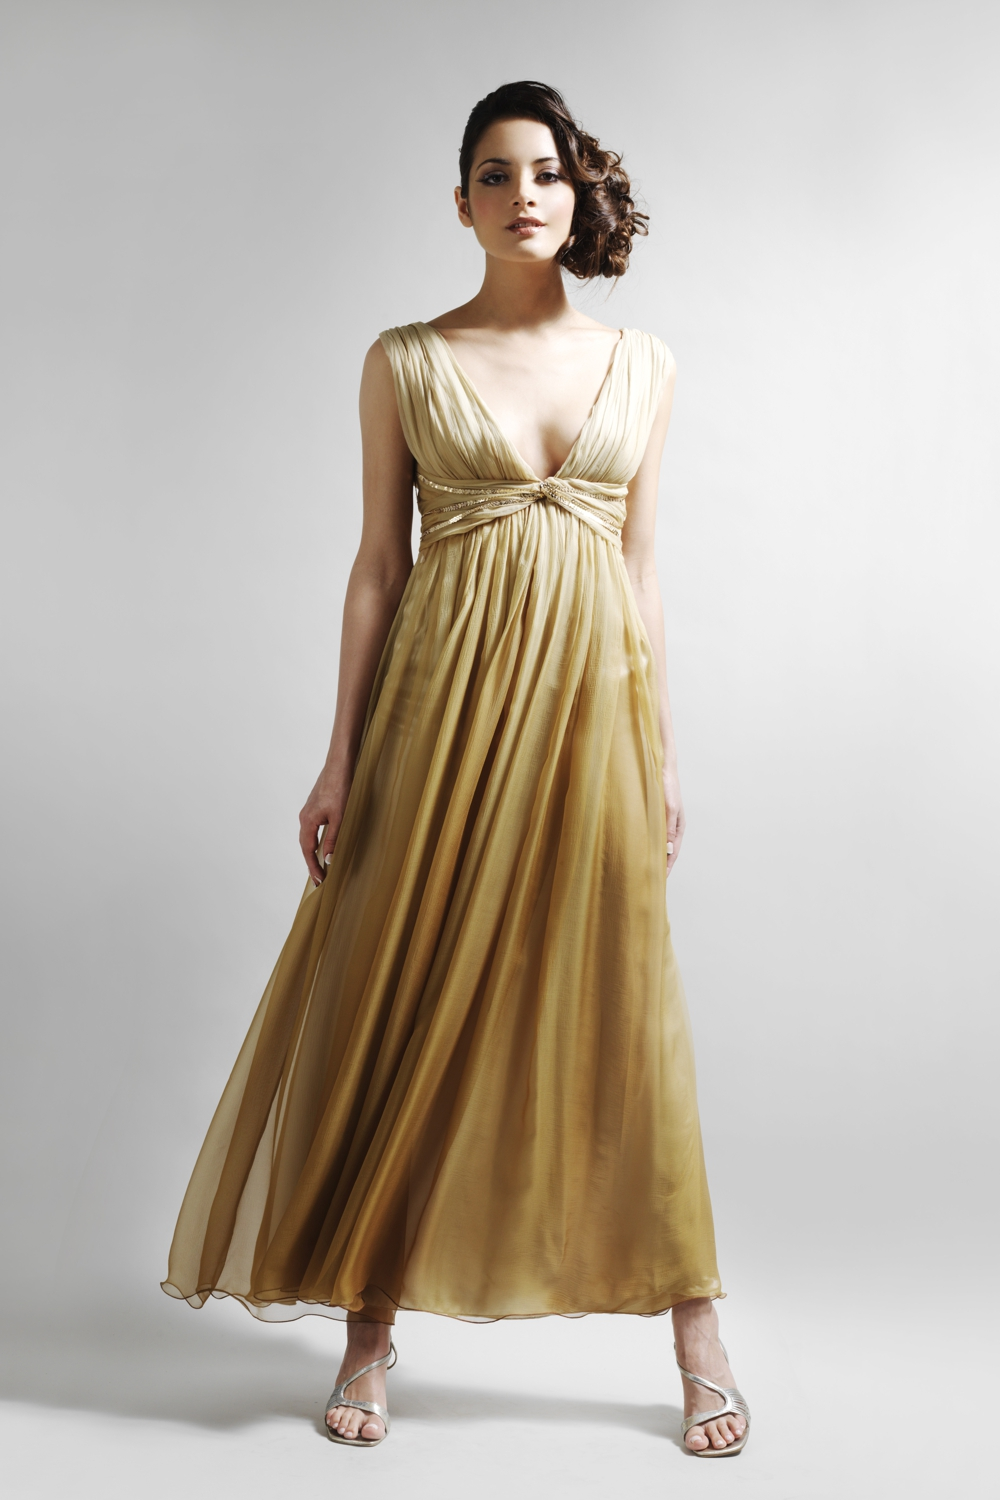 Gold ombre silk chiffon designer dress